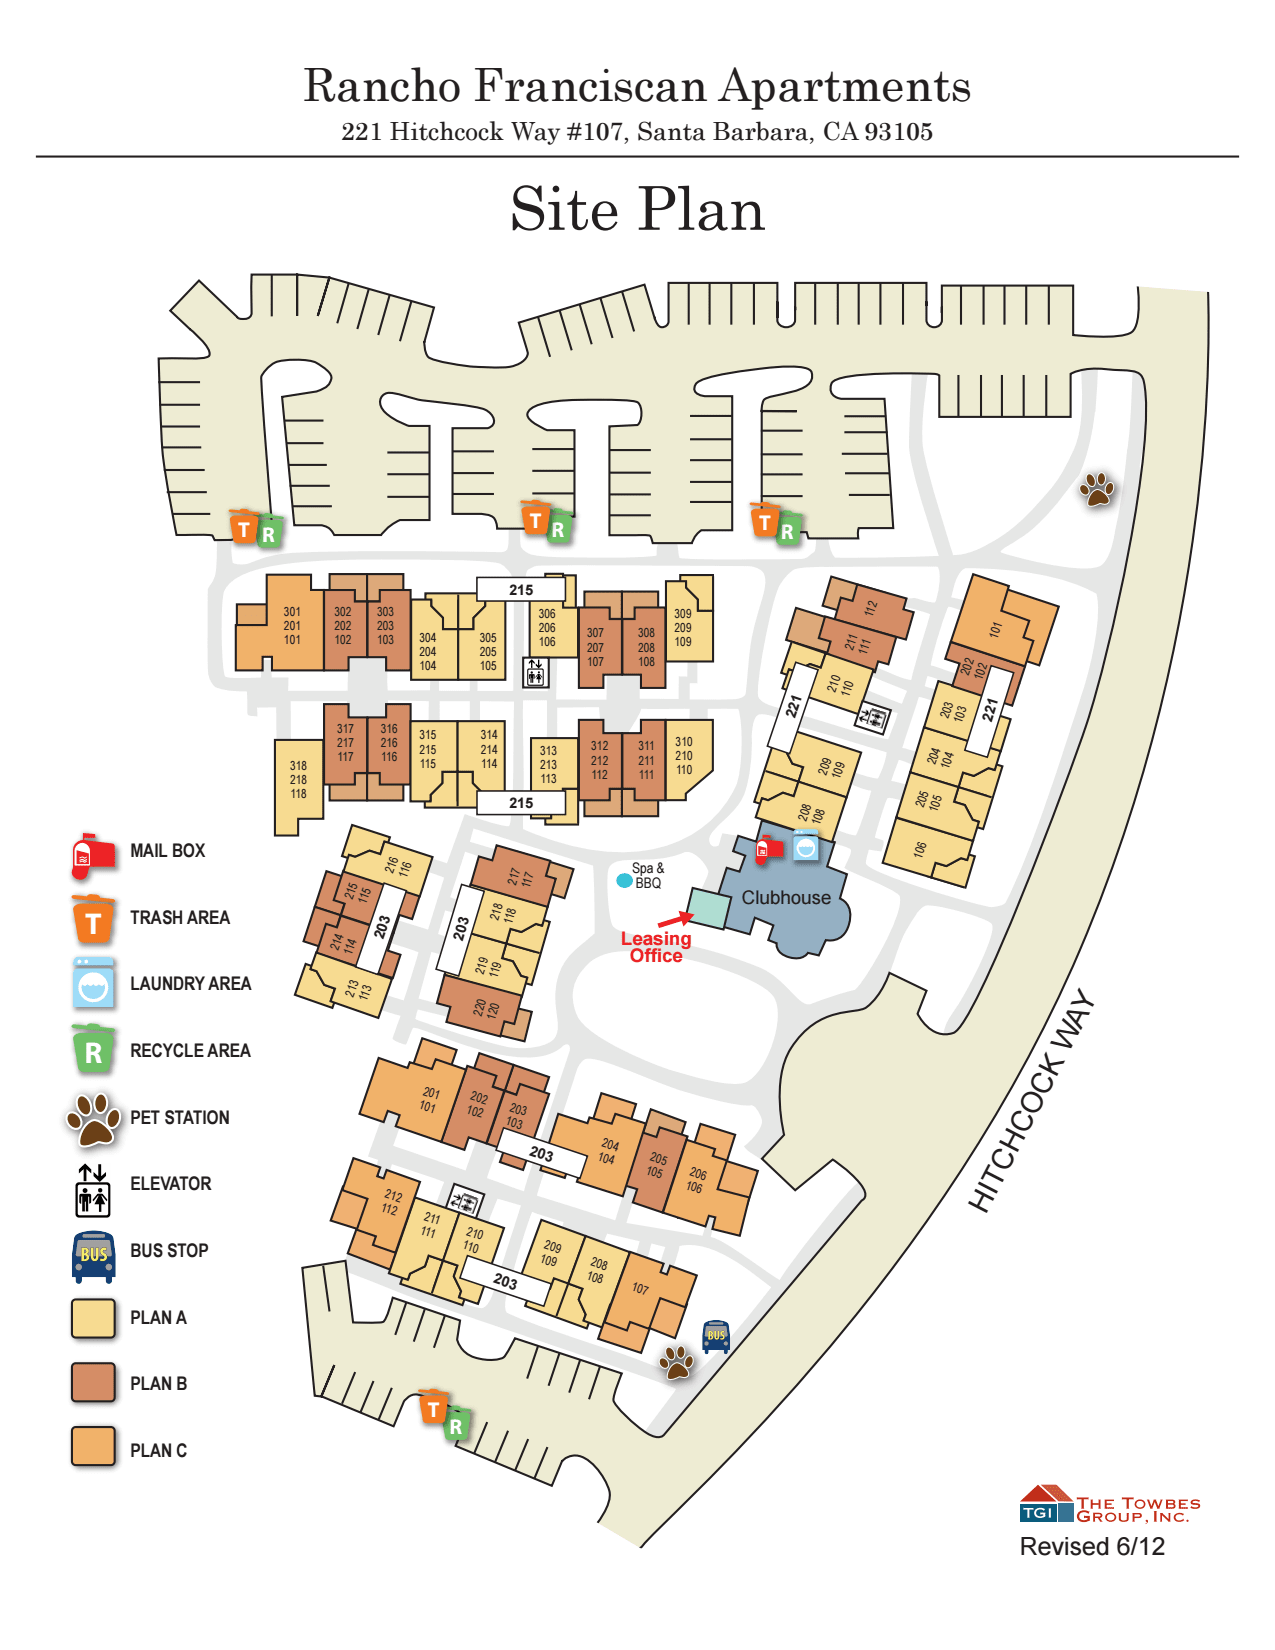 View our property map of Rancho Franciscan Senior Apartments